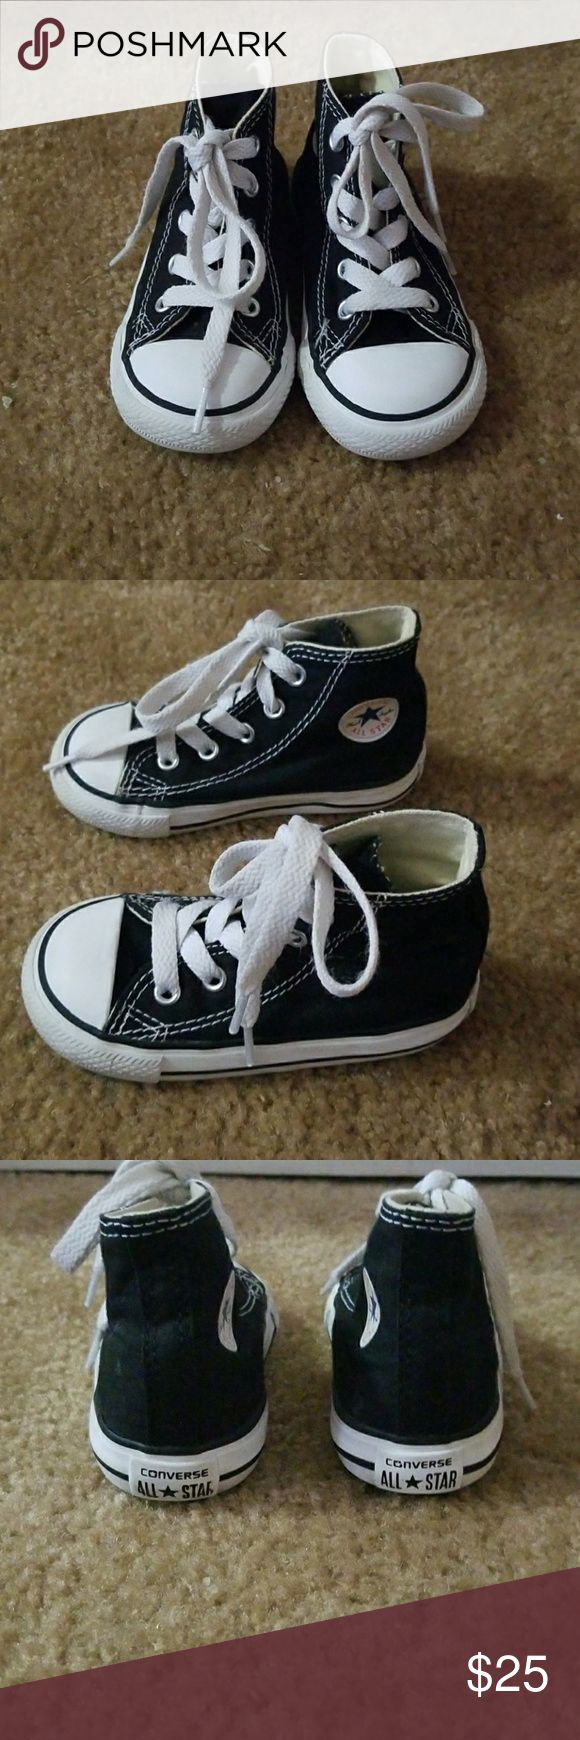 converse black high cut converse shoes for toddler size 6. great condition Converse Shoes